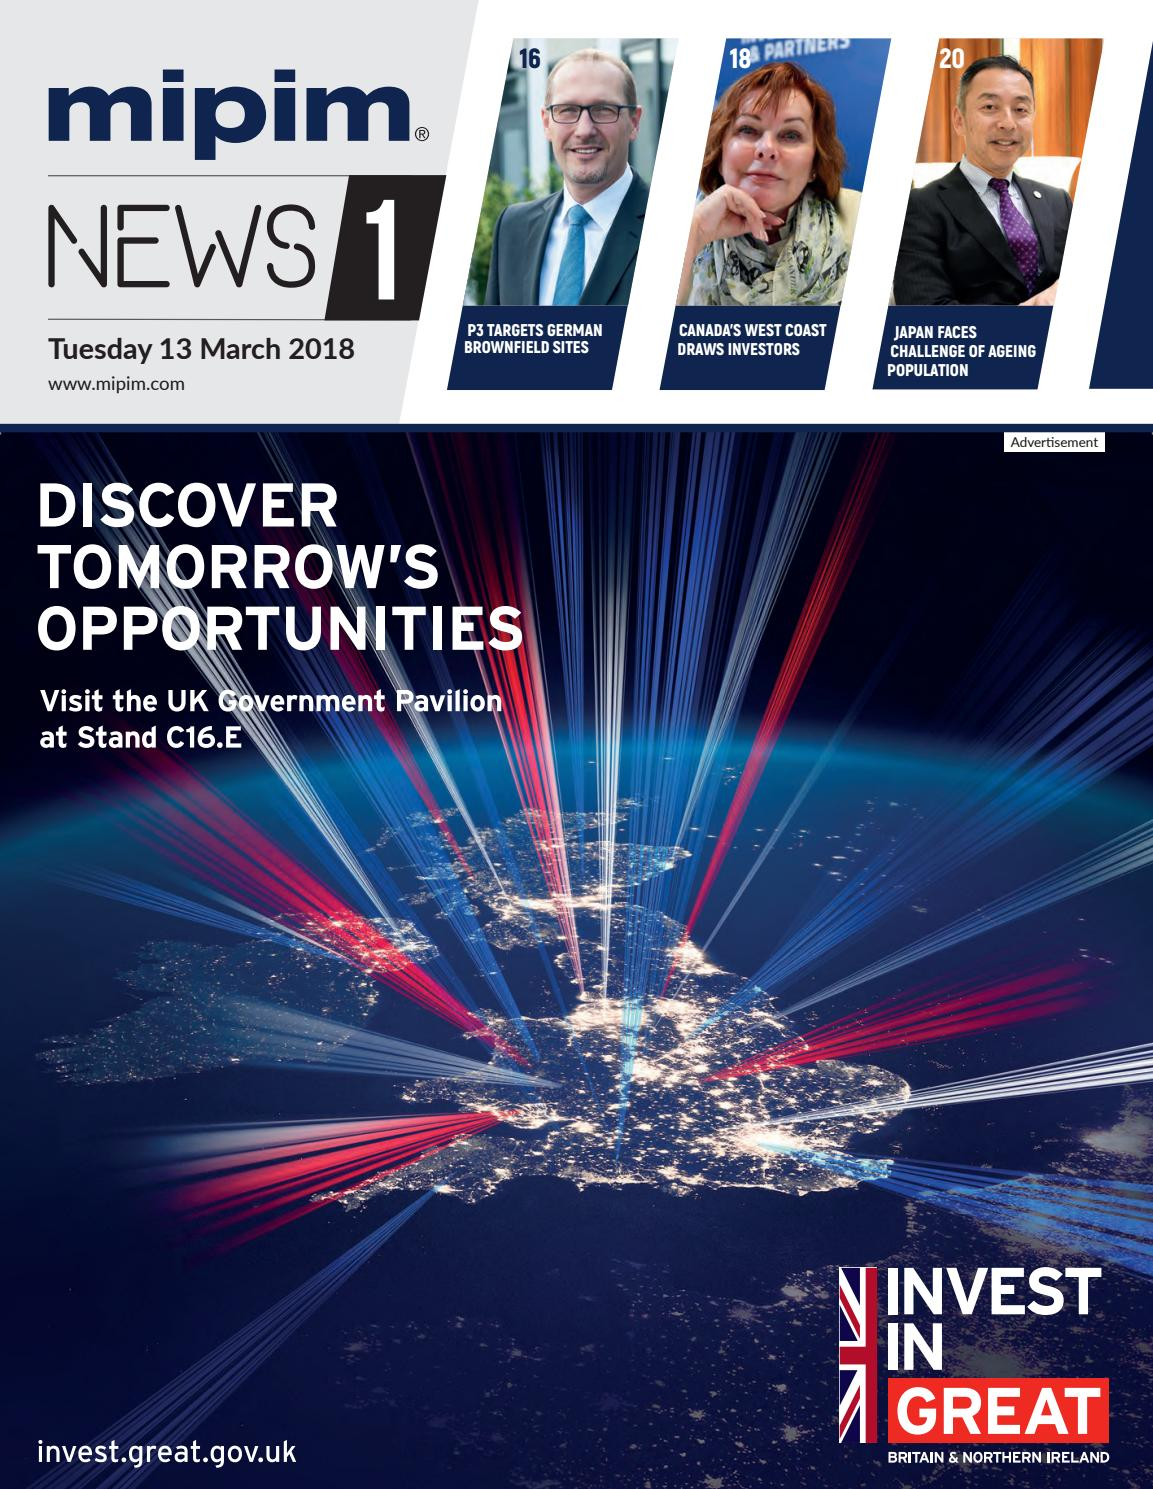 Mipim 2018 news 1 by REED MIDEM REAL ESTATE SHOWS - issuu 4a82d3067